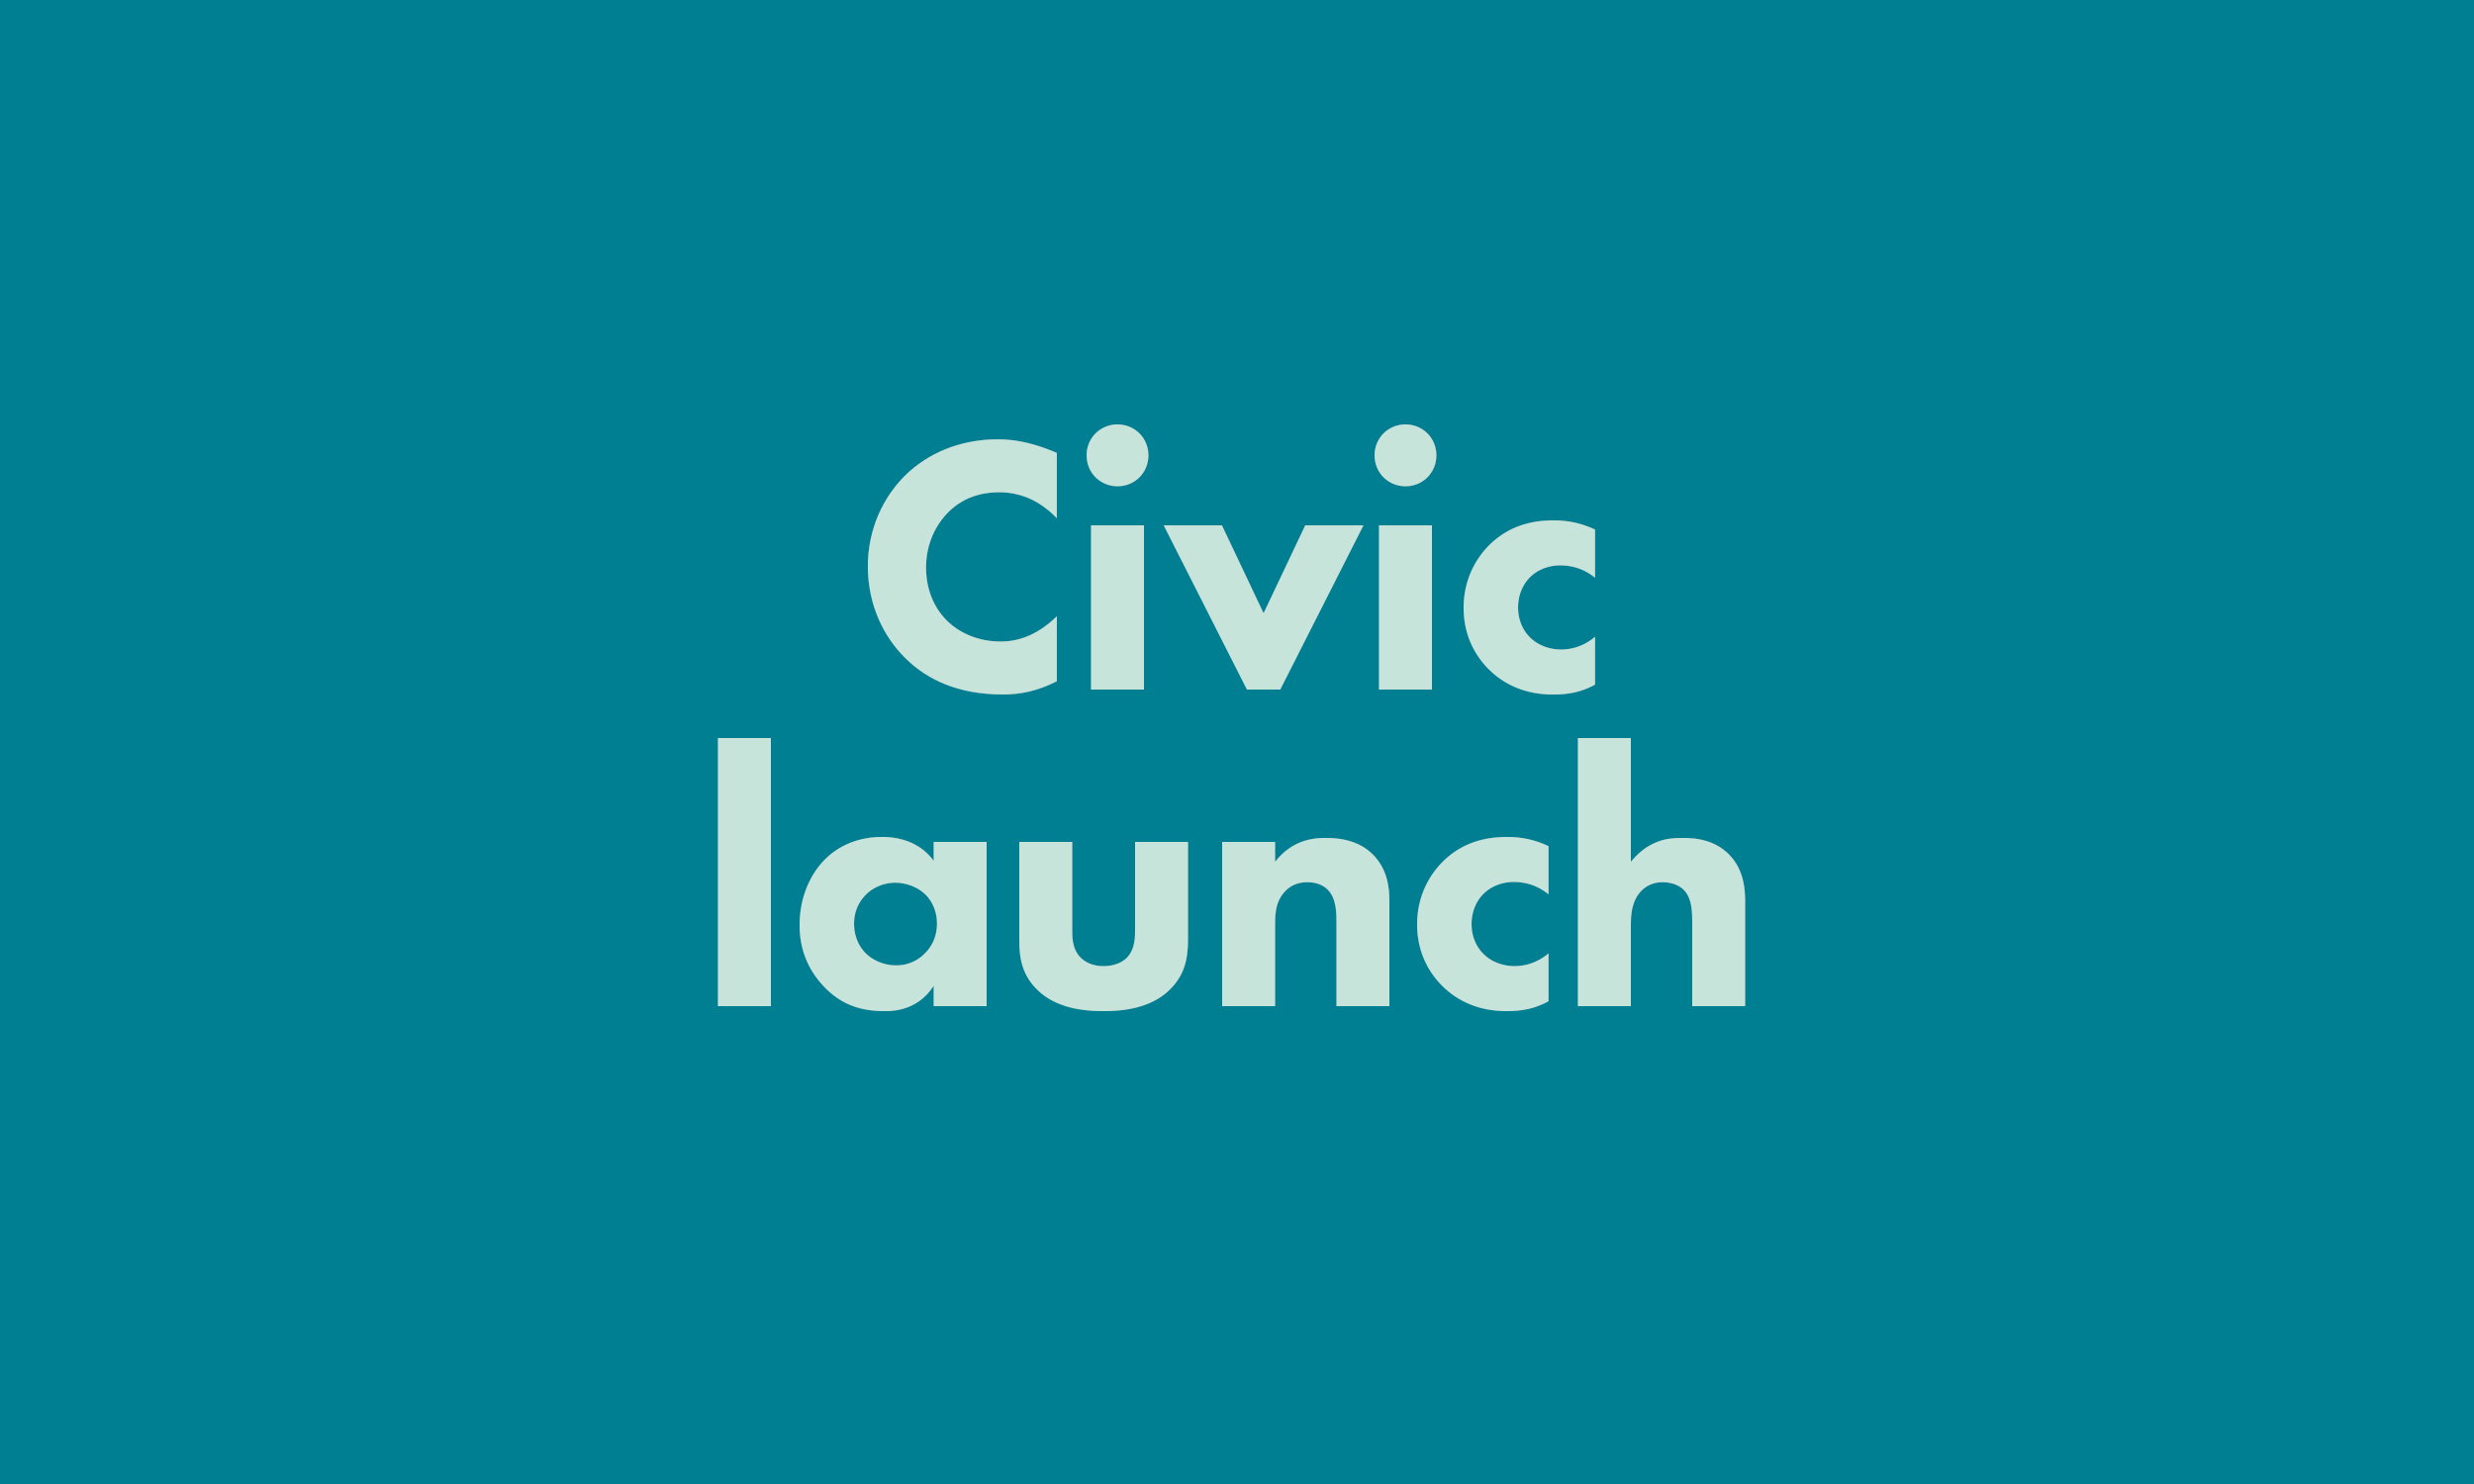 whats-on-civic-launch.jpg